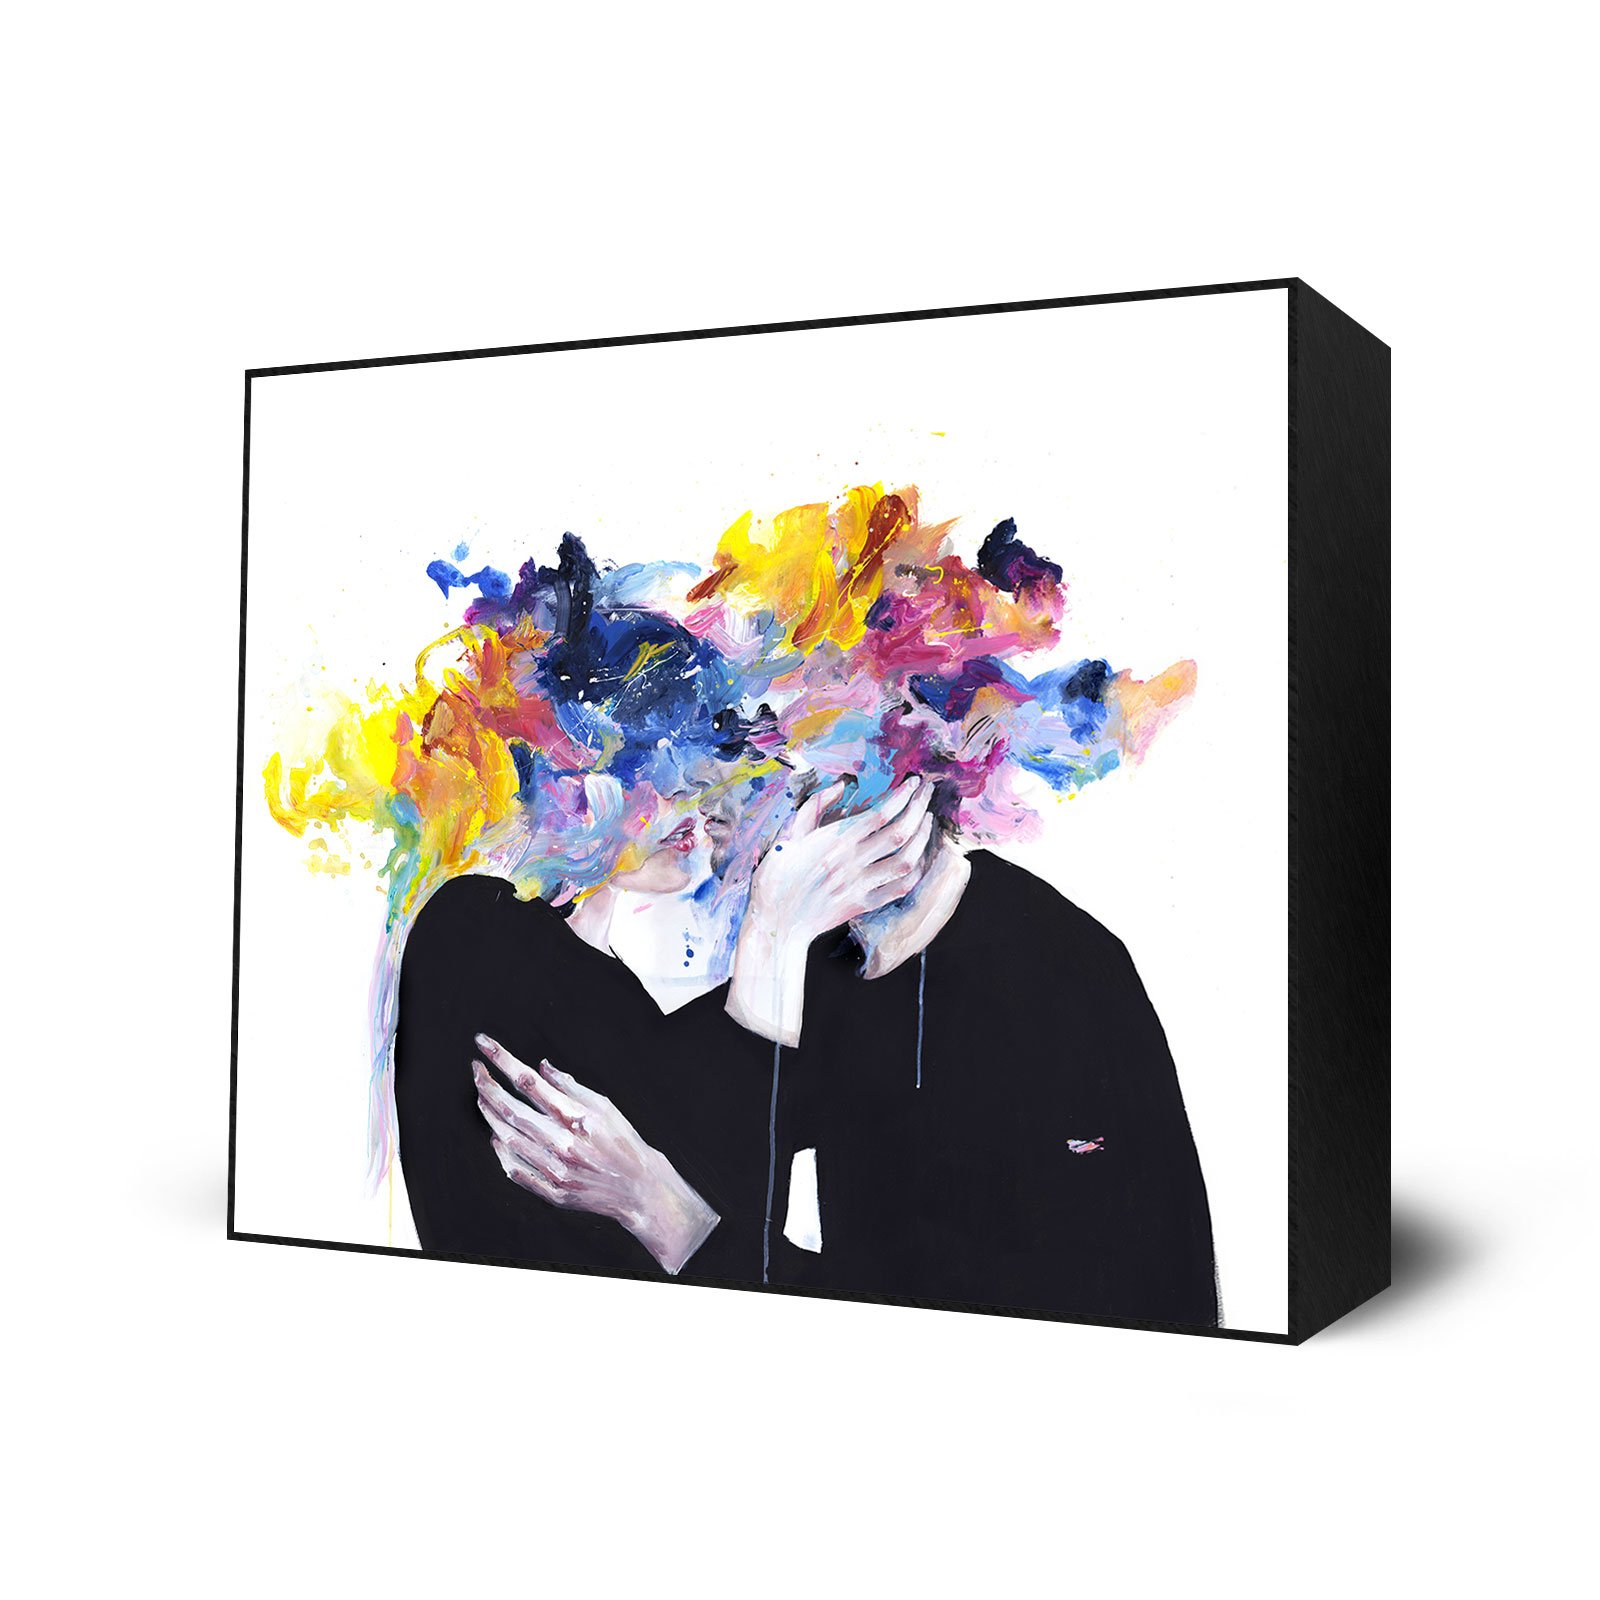 Intimacy On Display by Eyes On Walls